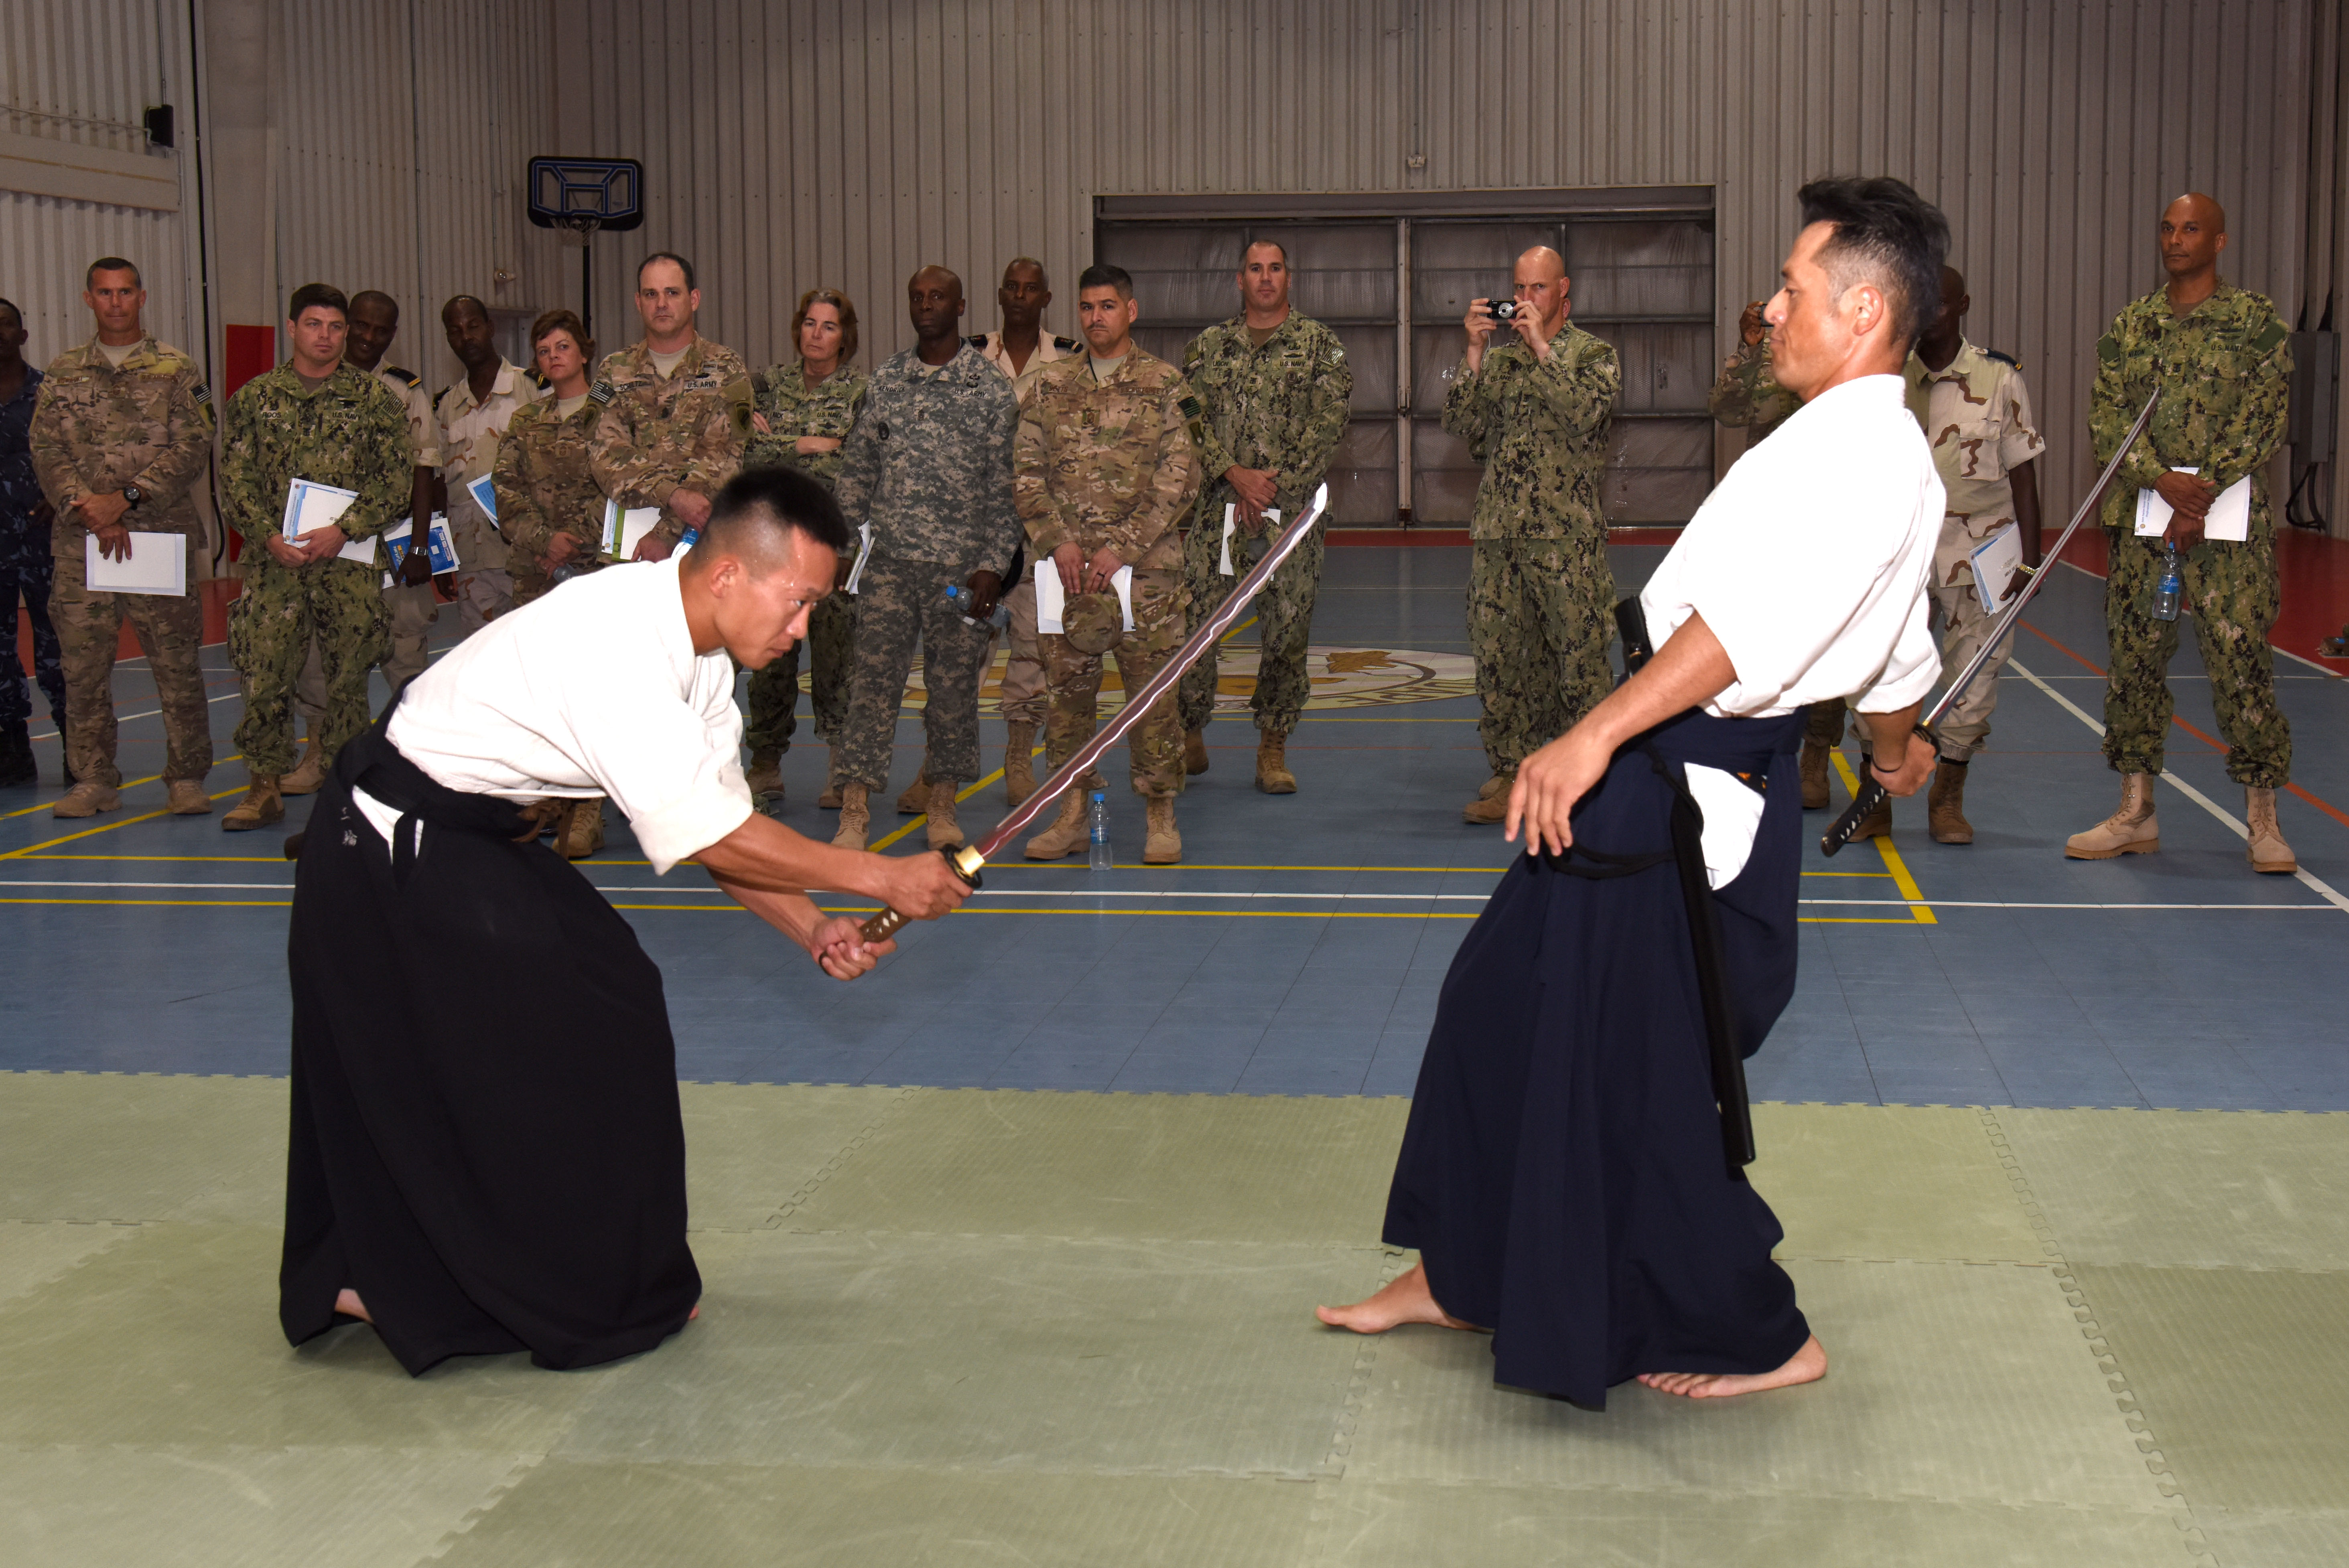 Participants from the Joint Forces Senior Enlisted Professional Development Course view a traditional swordsmanship demonstration at the Japan base in Djibouti, Nov. 24, 2015. The Japan Self-Defense Forces hosted the second gathering of senior enlisted members to share their culture and mission. (U.S. Air Force photo by  Staff Sgt. Victoria Sneed)